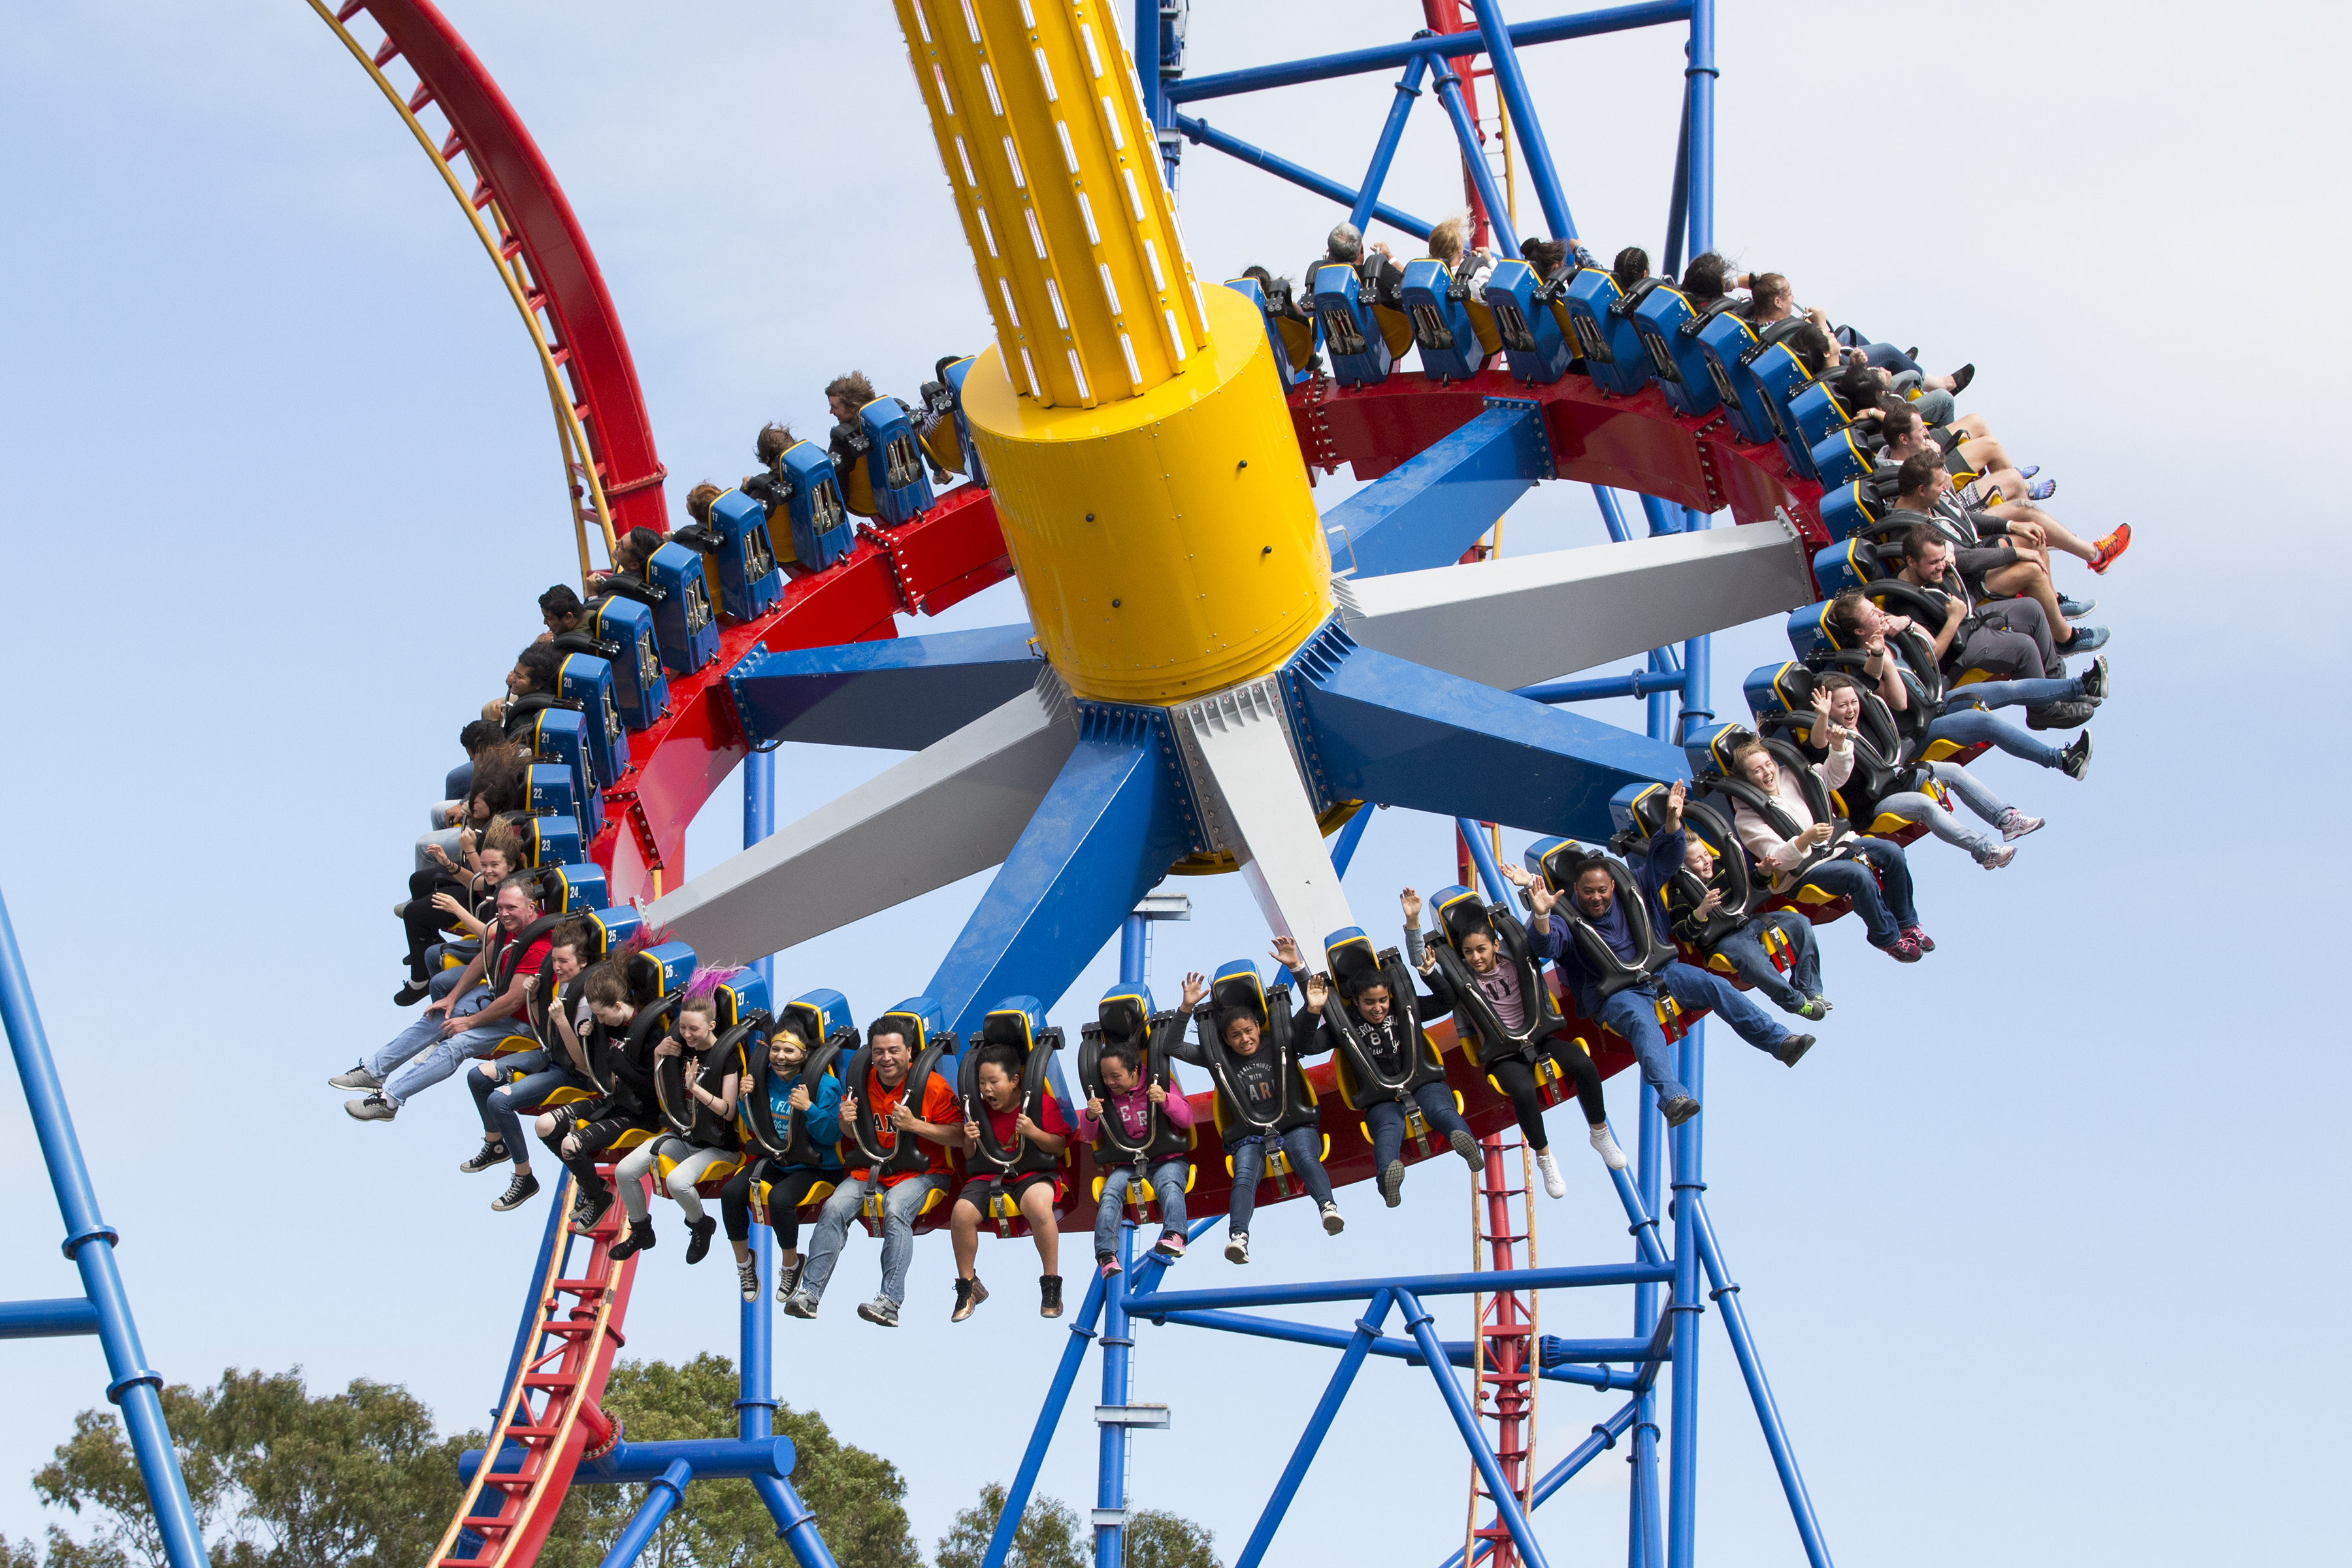 Wonder Woman Lasso of Truth holds 40 riders facing outward as they rotate and swing up to 147 feet high. (Photo: Business Wire)